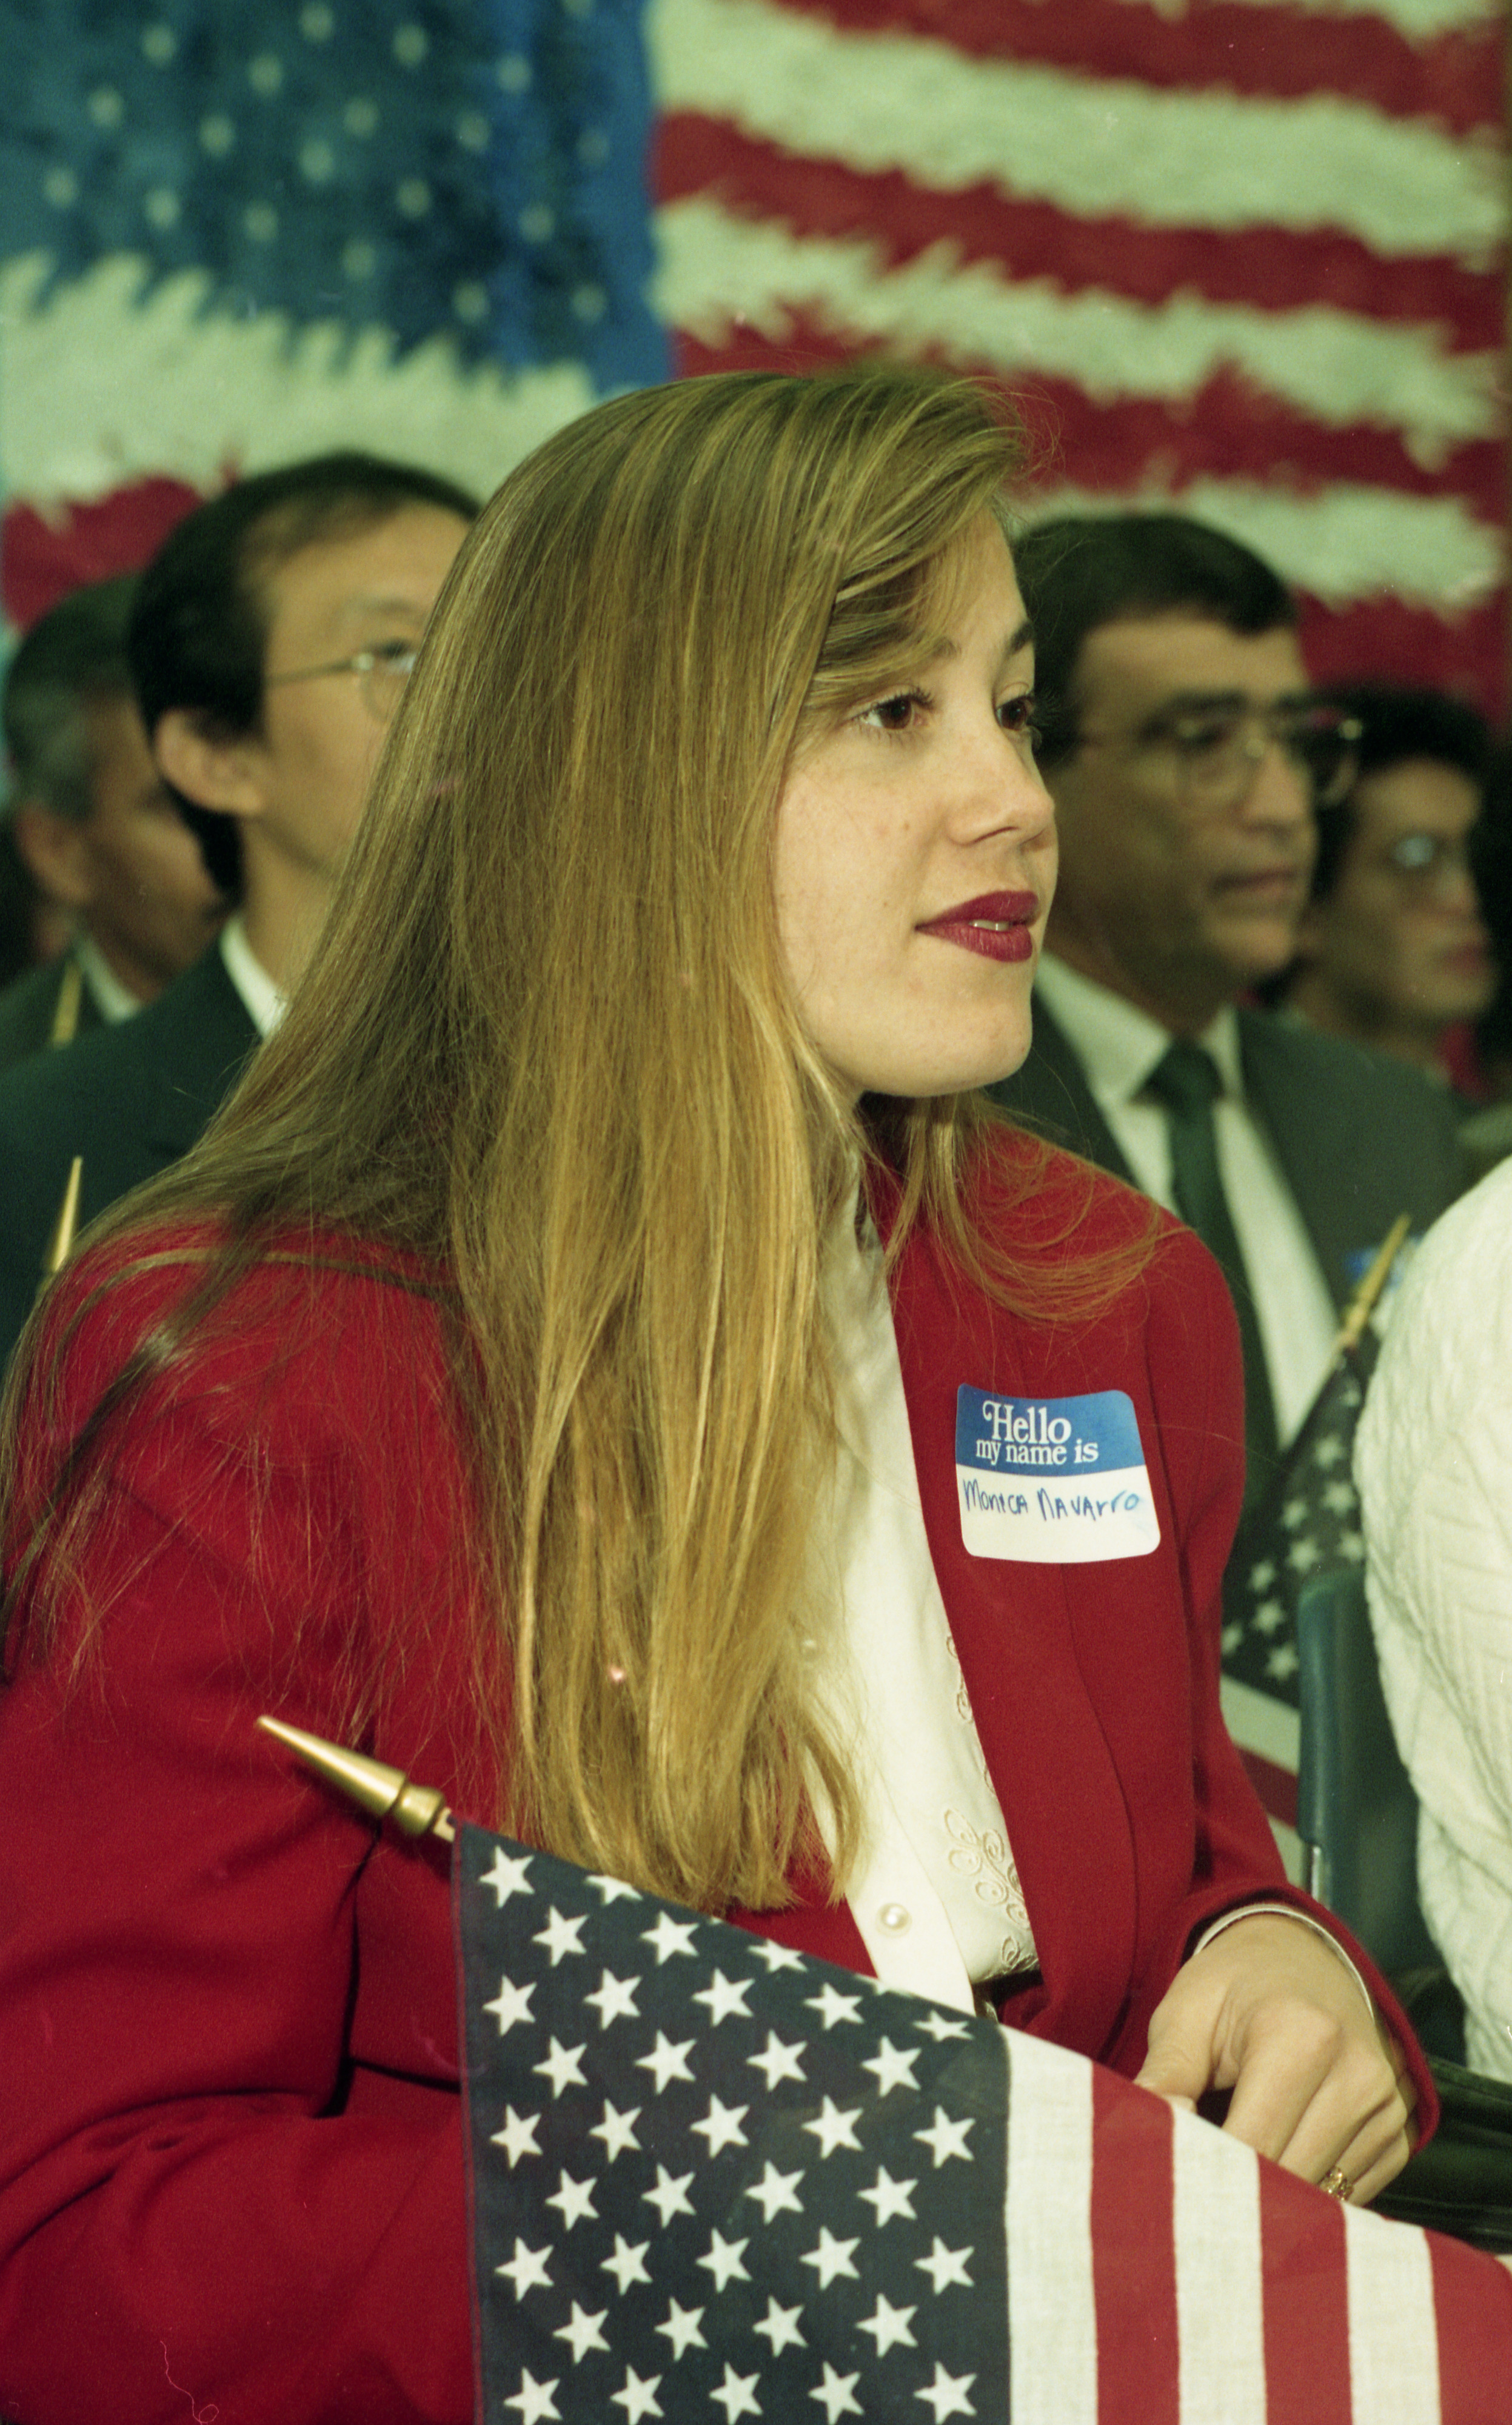 Monica Navarro Becomes U.S. Citizen In Ceremony At Houghton Elementary School In Saline, October 1993 image